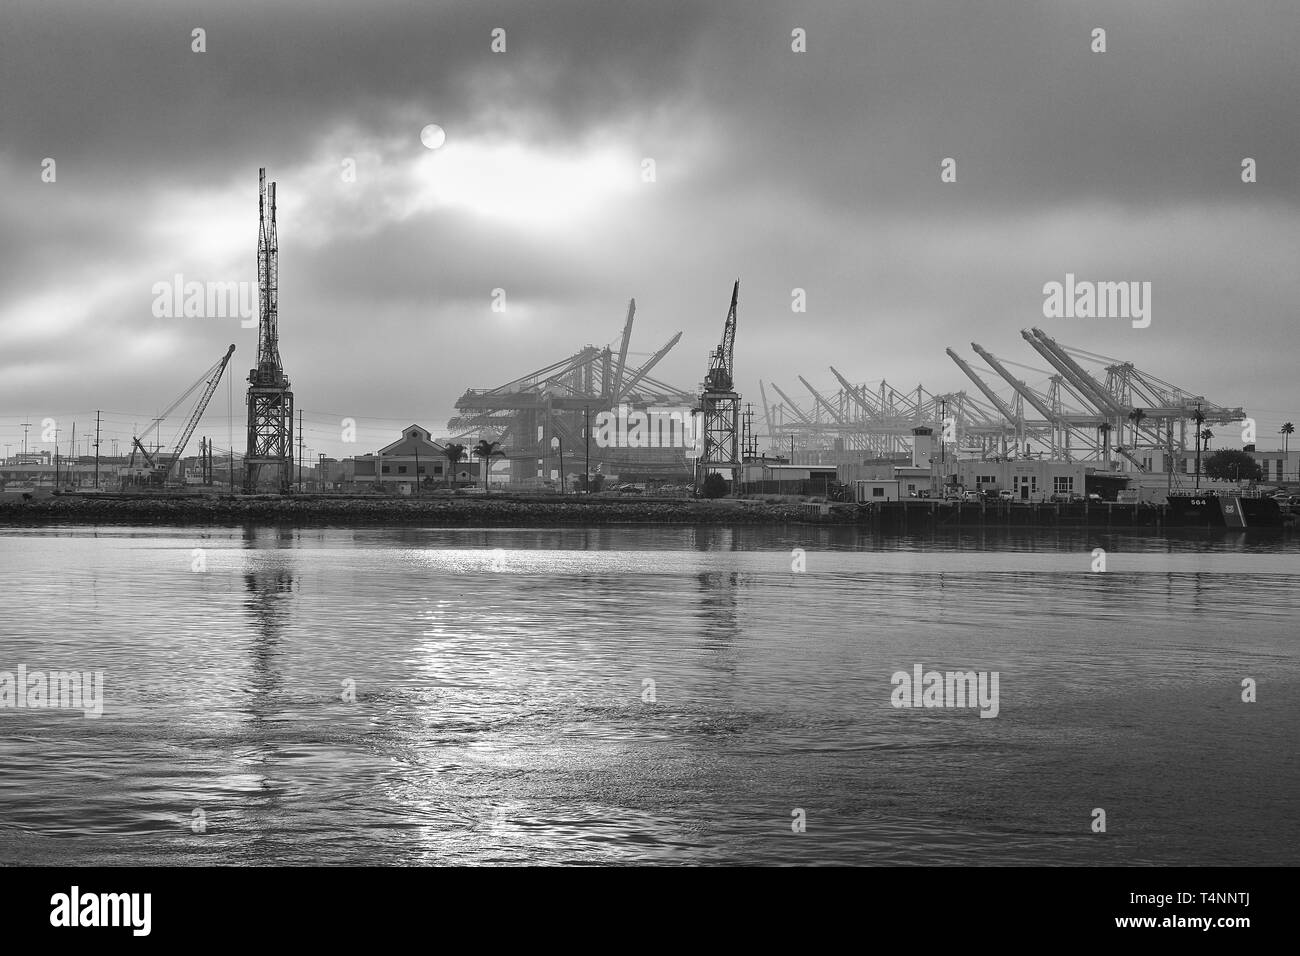 Black And White Photo Of The Sun Rising Over The Los Angeles Container Terminal And Terminal Island, California, USA. - Stock Image